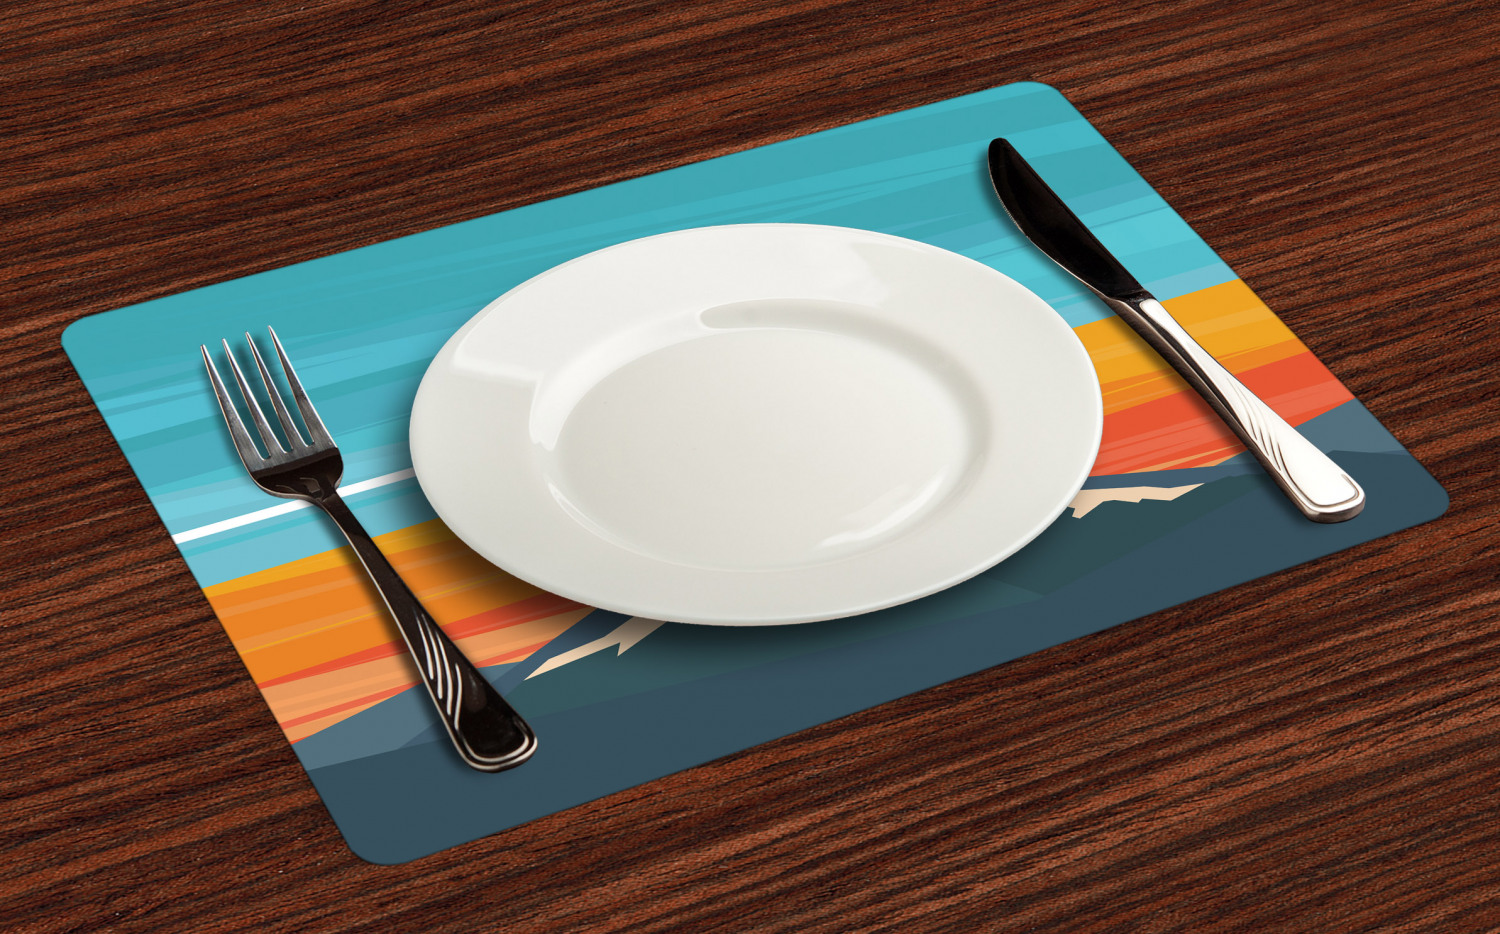 Ambesonne-Fabric-Place-Mats-Set-of-4-Placemats-for-Dining-Room-and-Kitchen-Table thumbnail 133